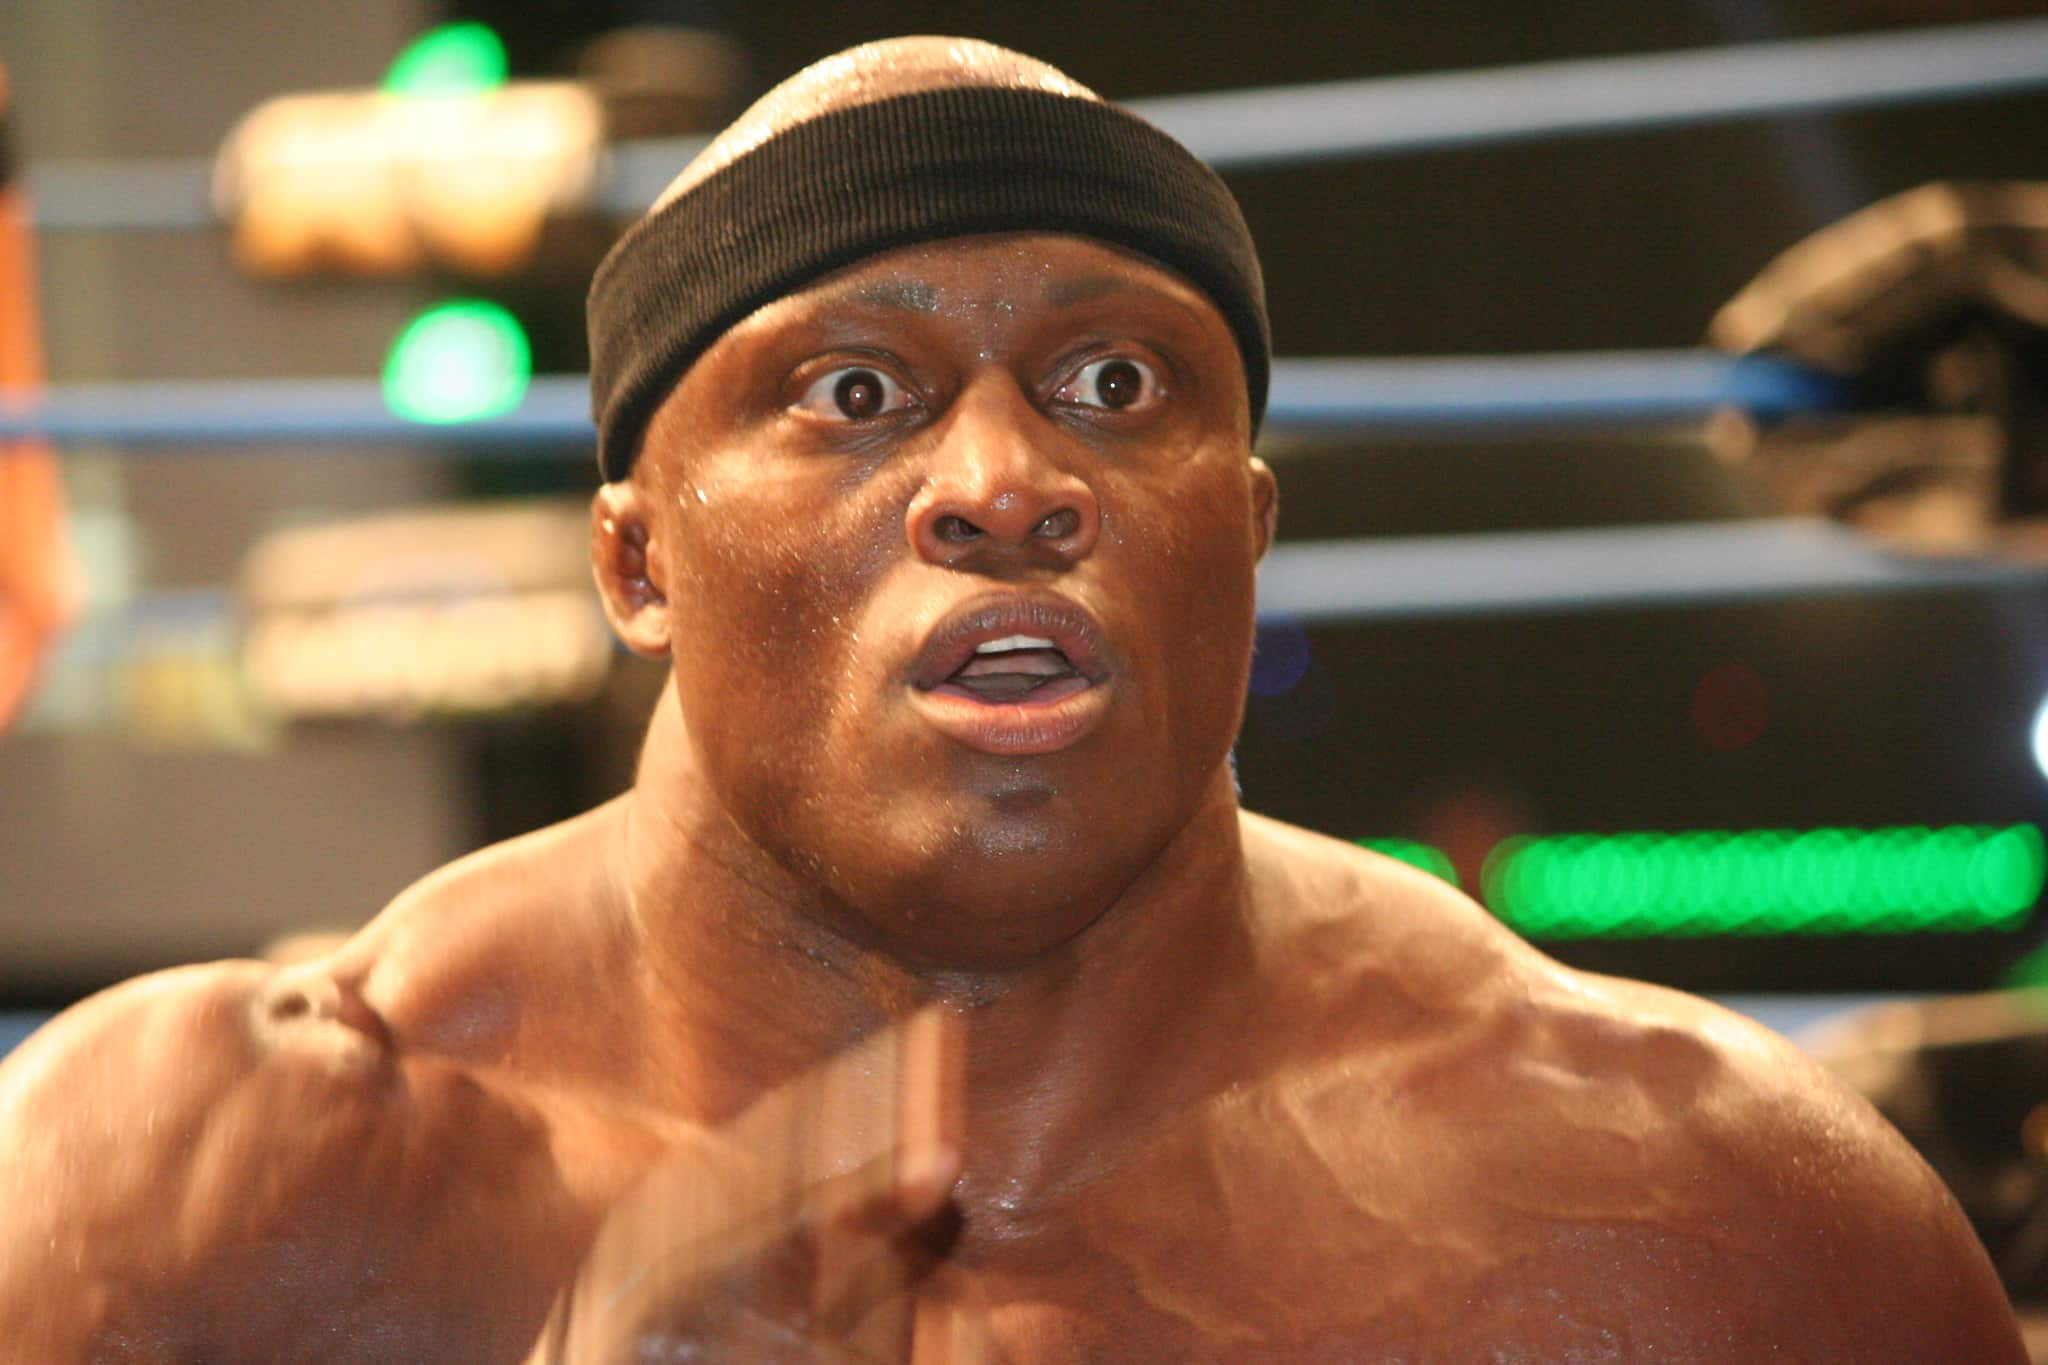 Bobby Lashley Wins the WWE Championship Belt, Defeats The Mizz